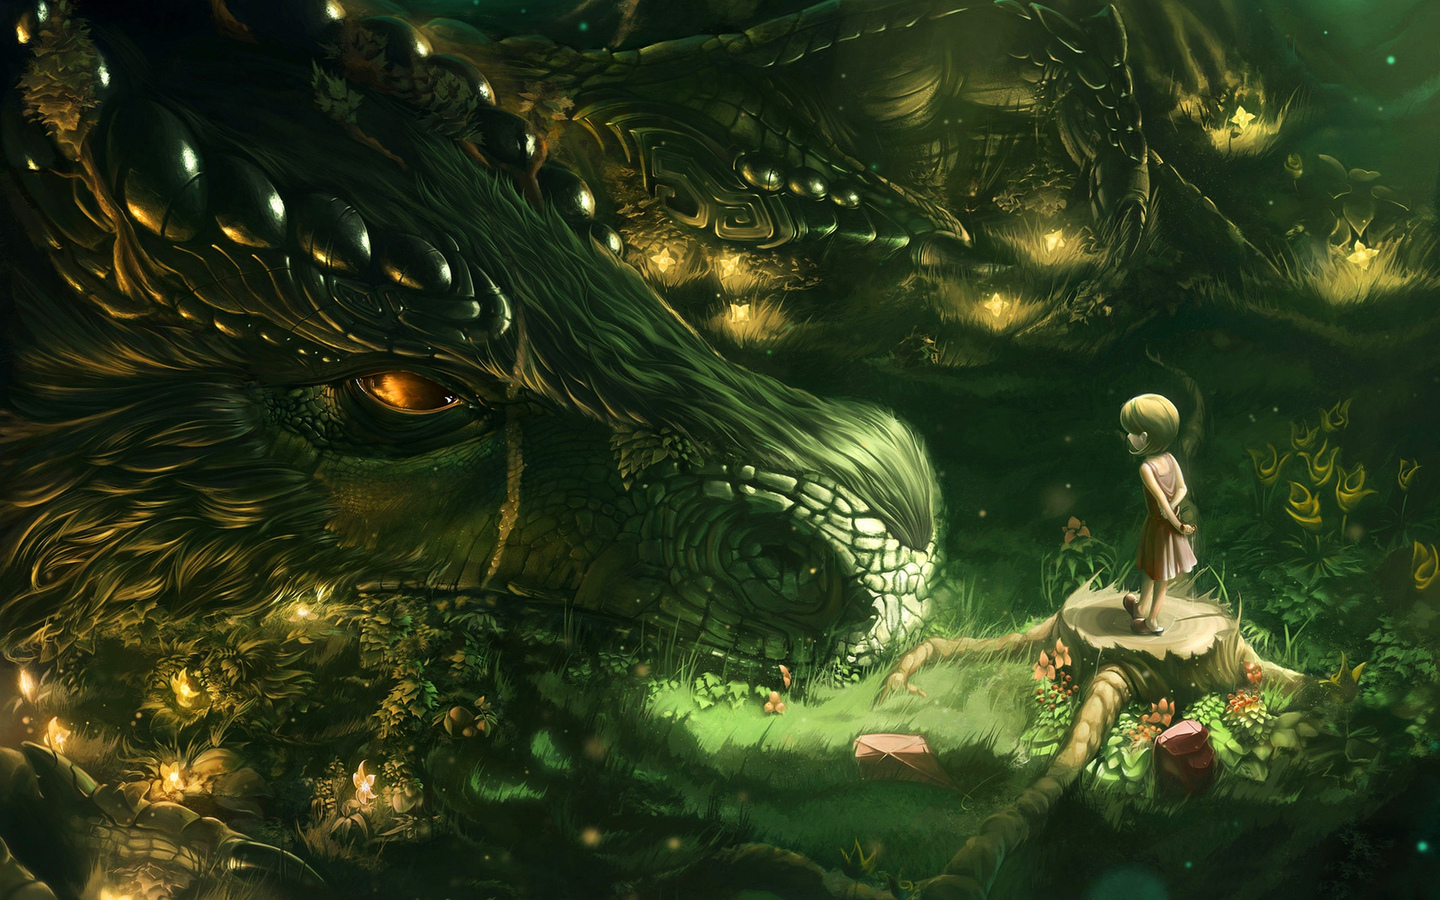 fantasy, dragon, child, green, fortress